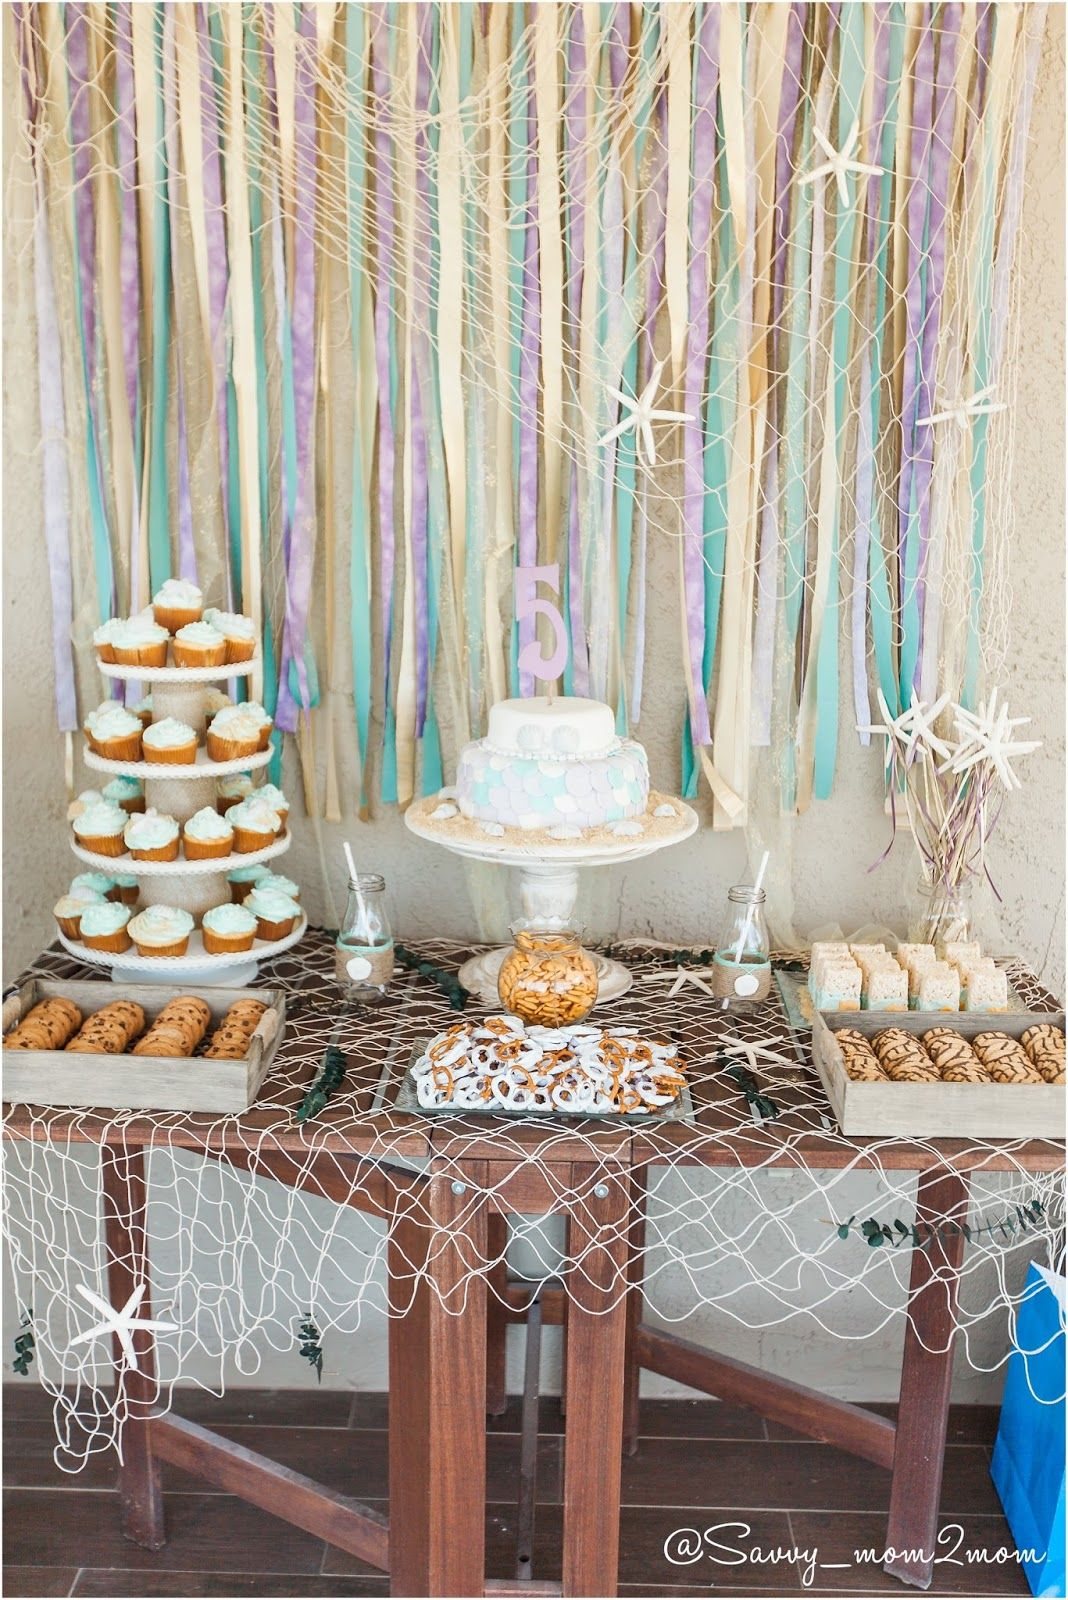 under the sea mermaid party ideas cake table backdrop vintage rh pinterest com